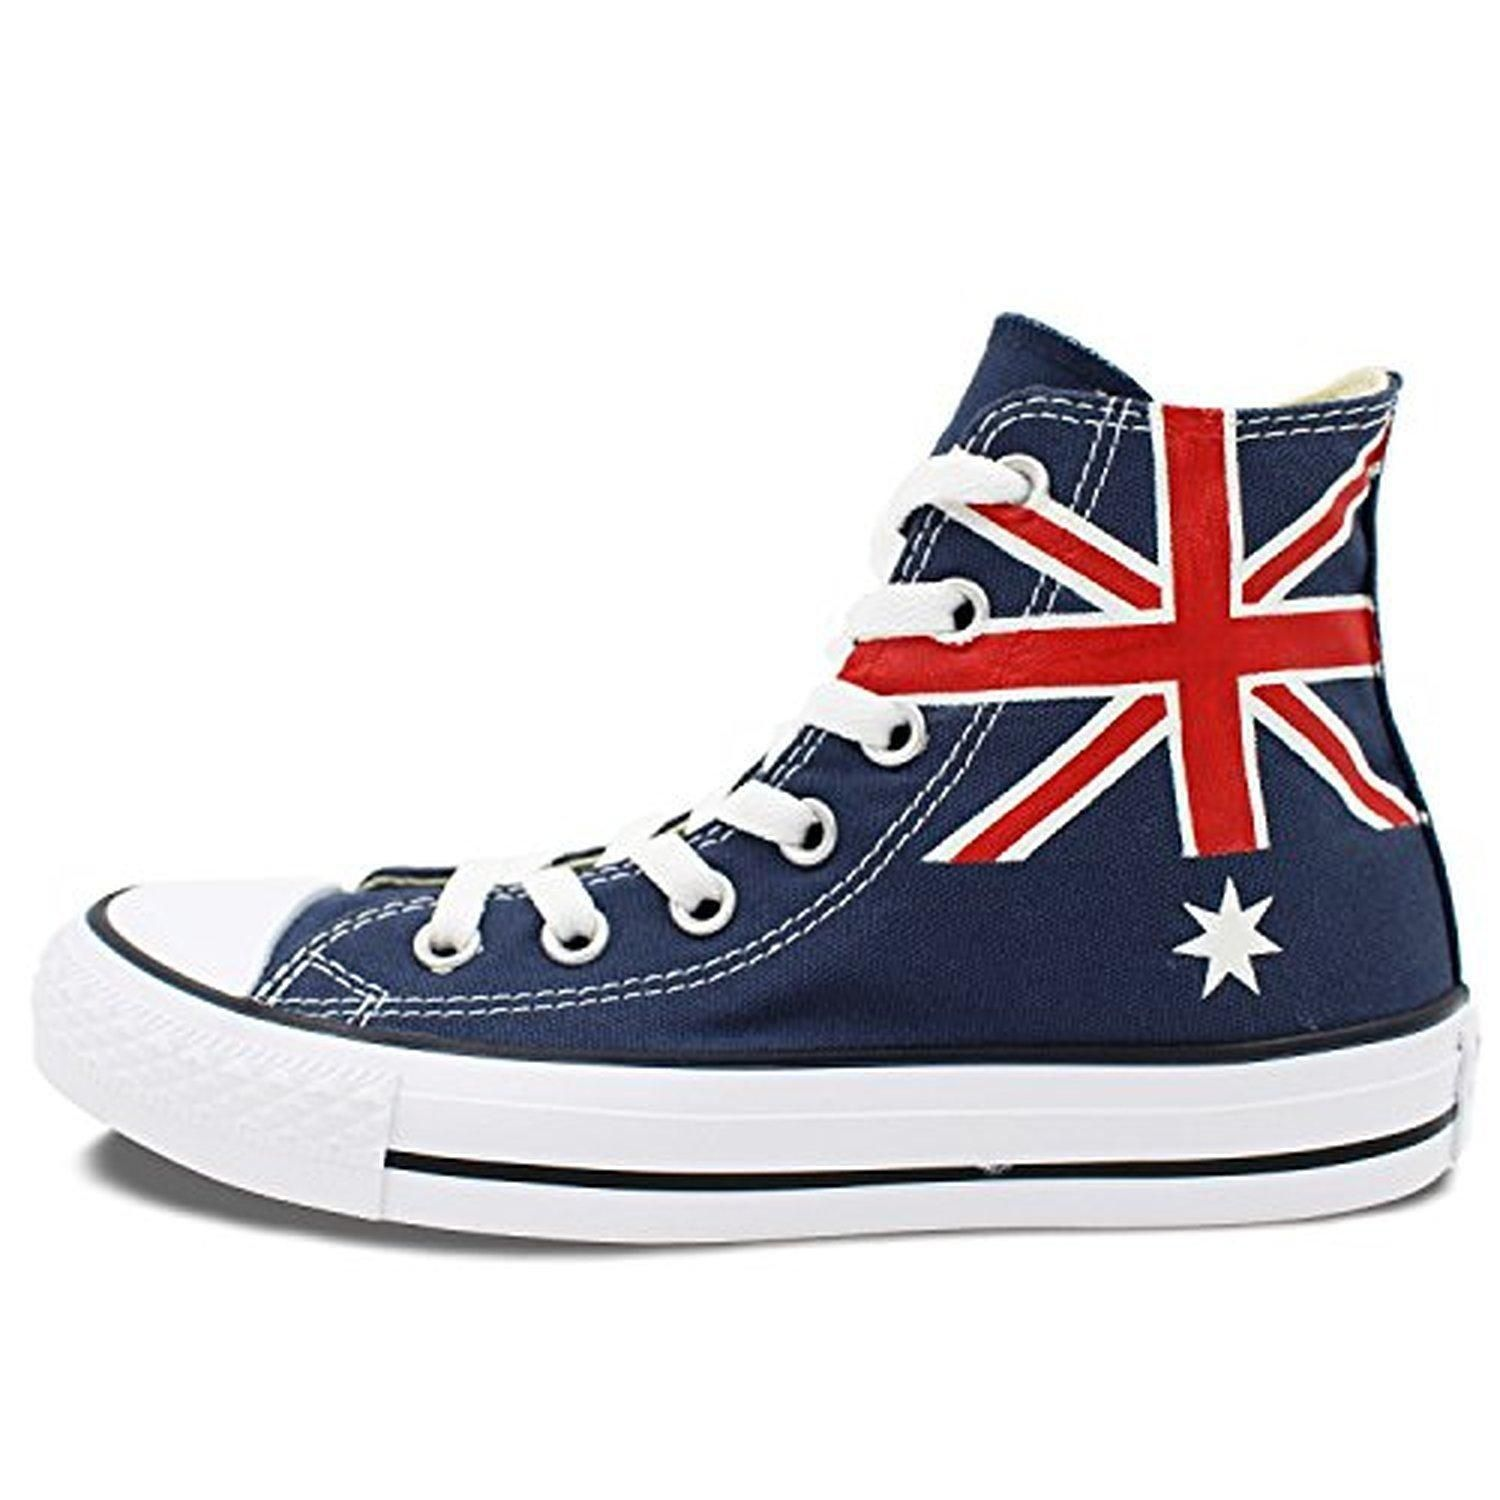 f0902c8ea748 Wen s Studio Washable Hand Painted Converse Shoes Australia Flag High Top  Canvas Sneaker - Brought to you by Avarsha.com